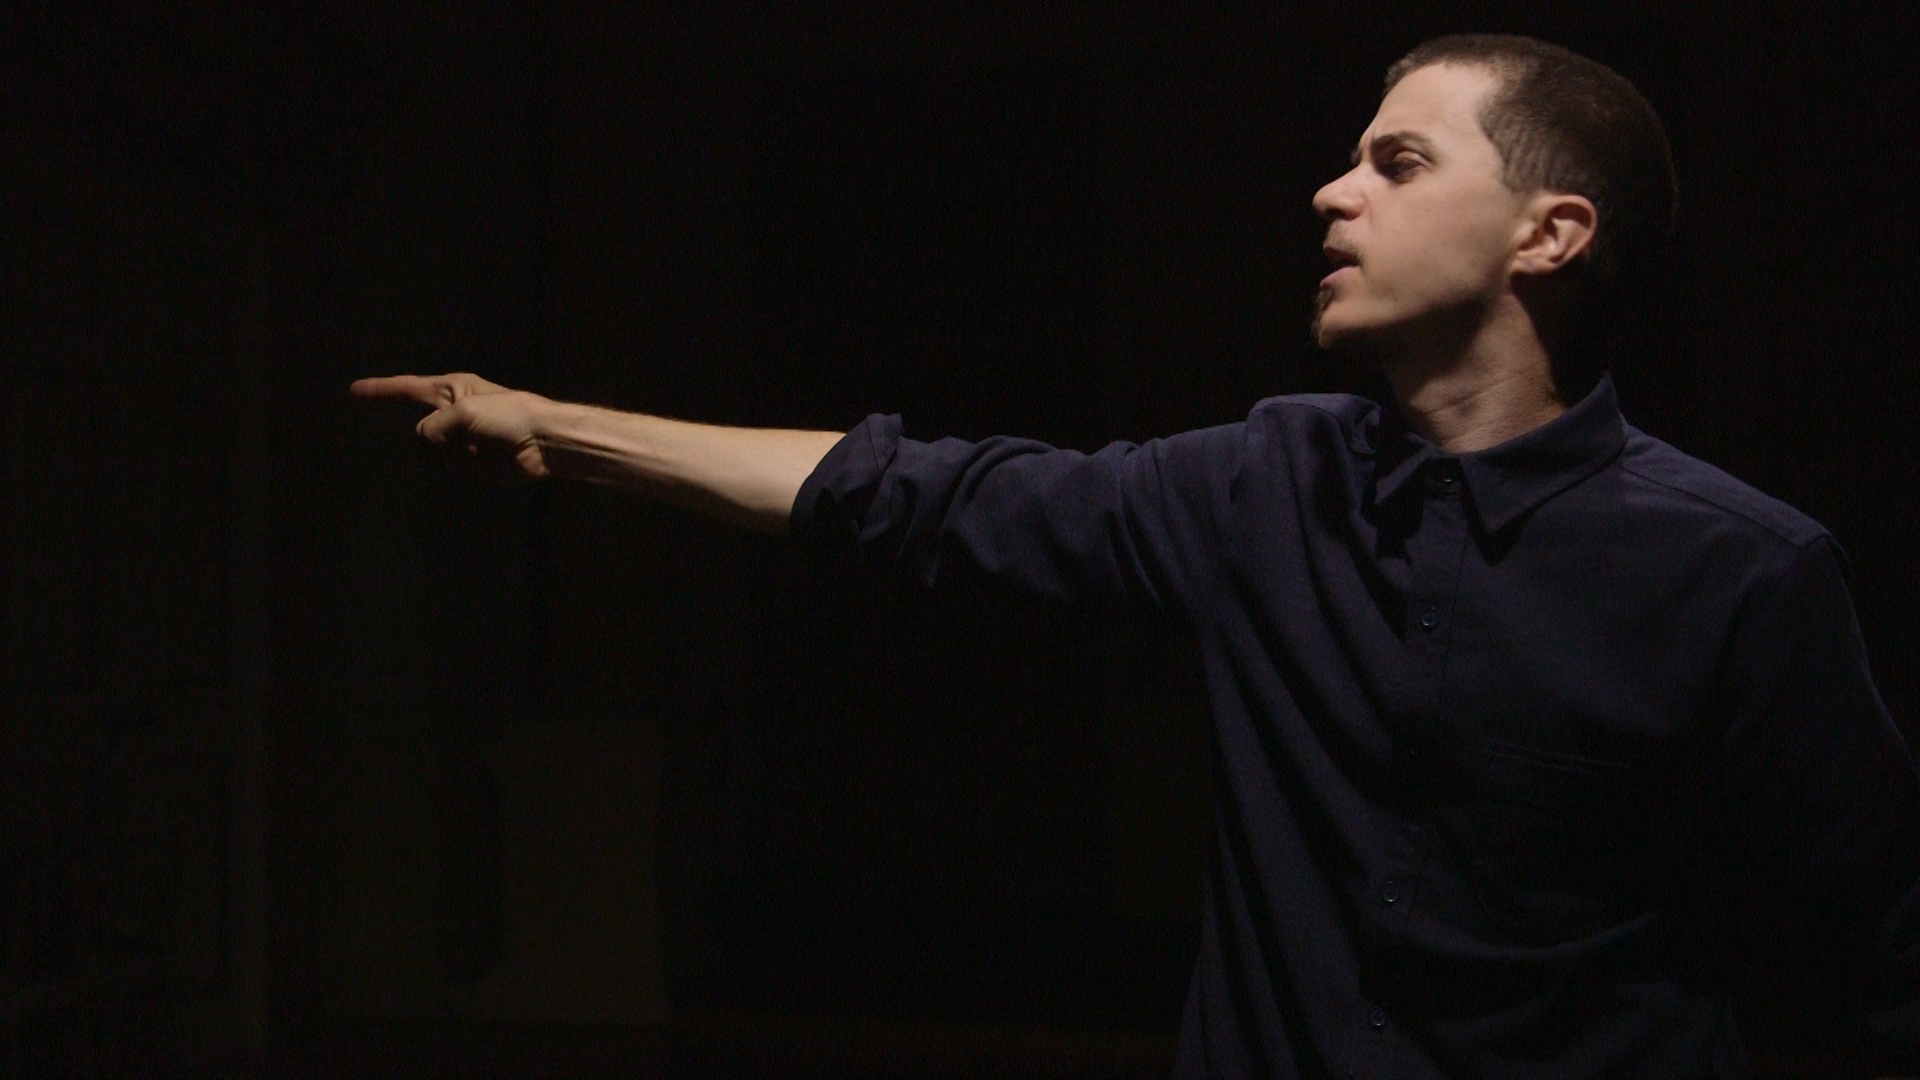 Watsky on How to Ruin Everything - The poet-turned-rapper pulled no punches in his first collection of essays.Season 1, Episode 7